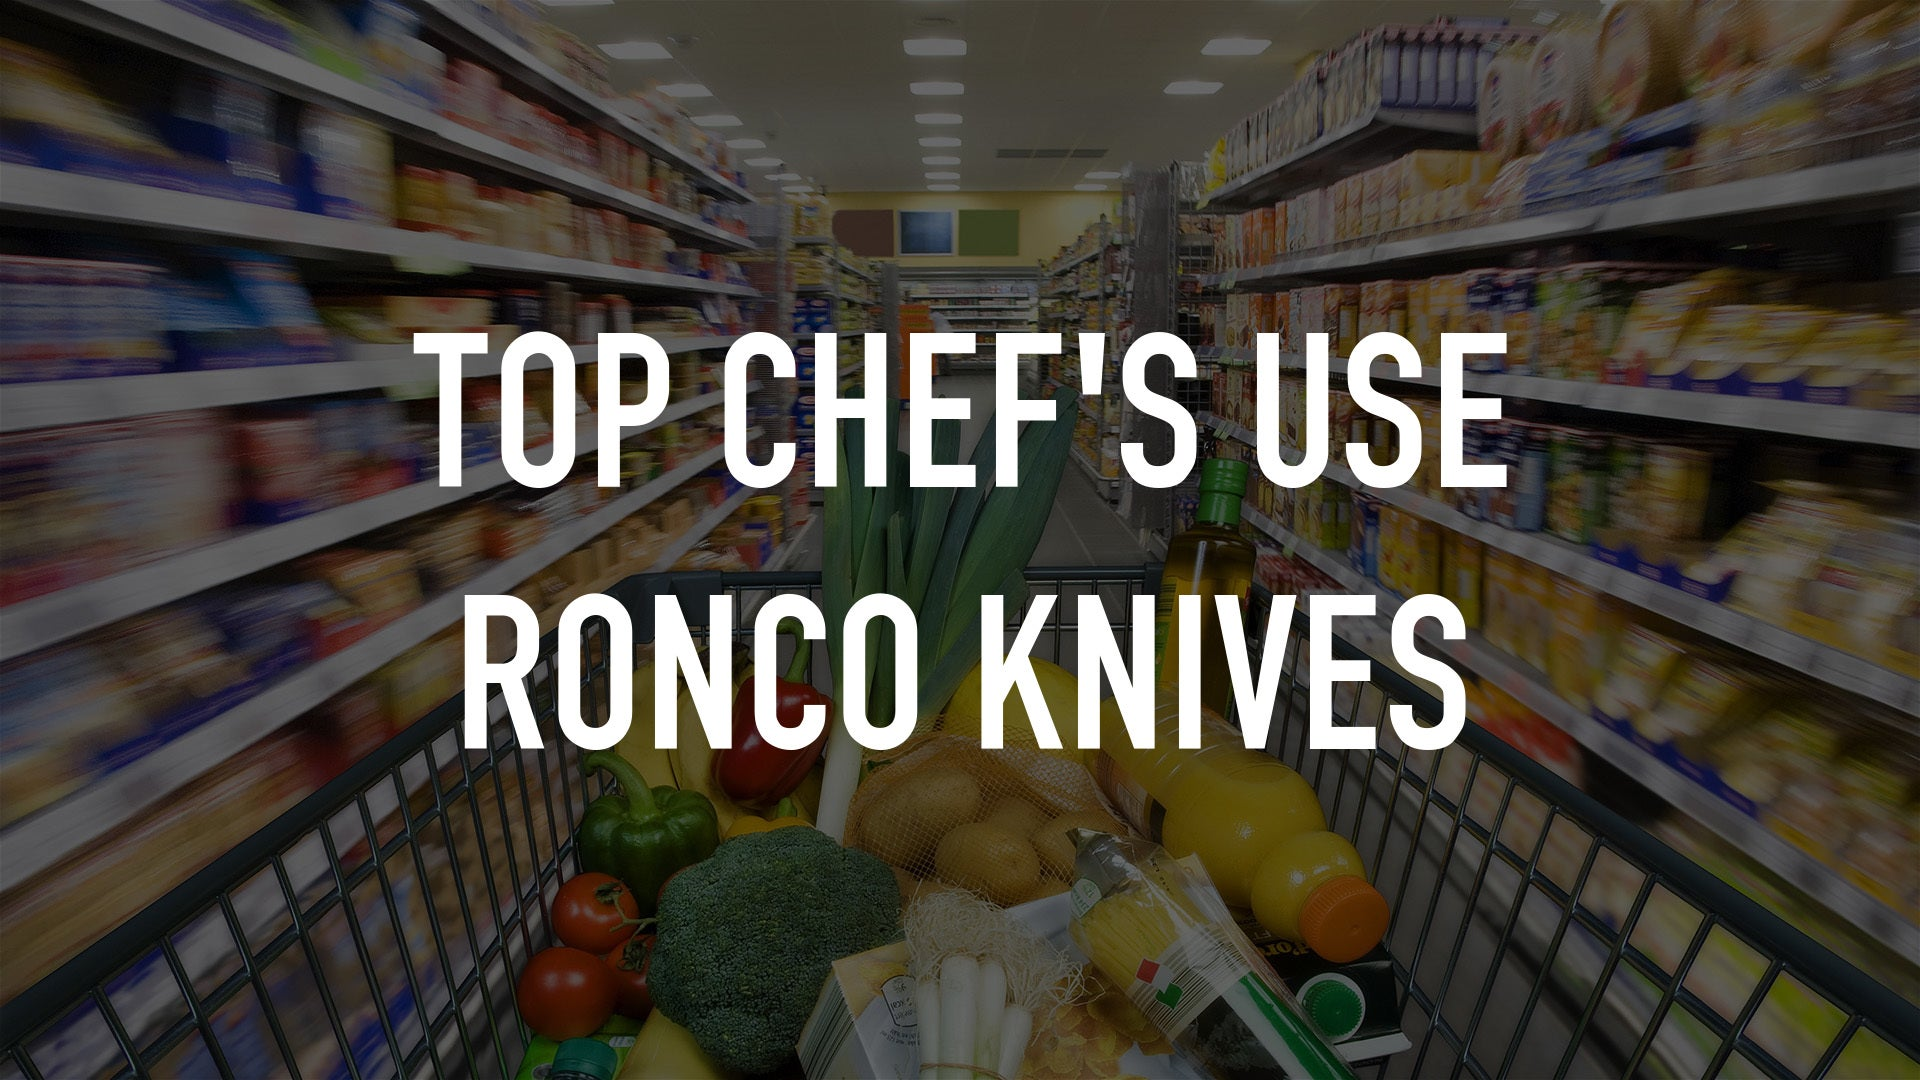 Top Chef's Use Ronco Knives